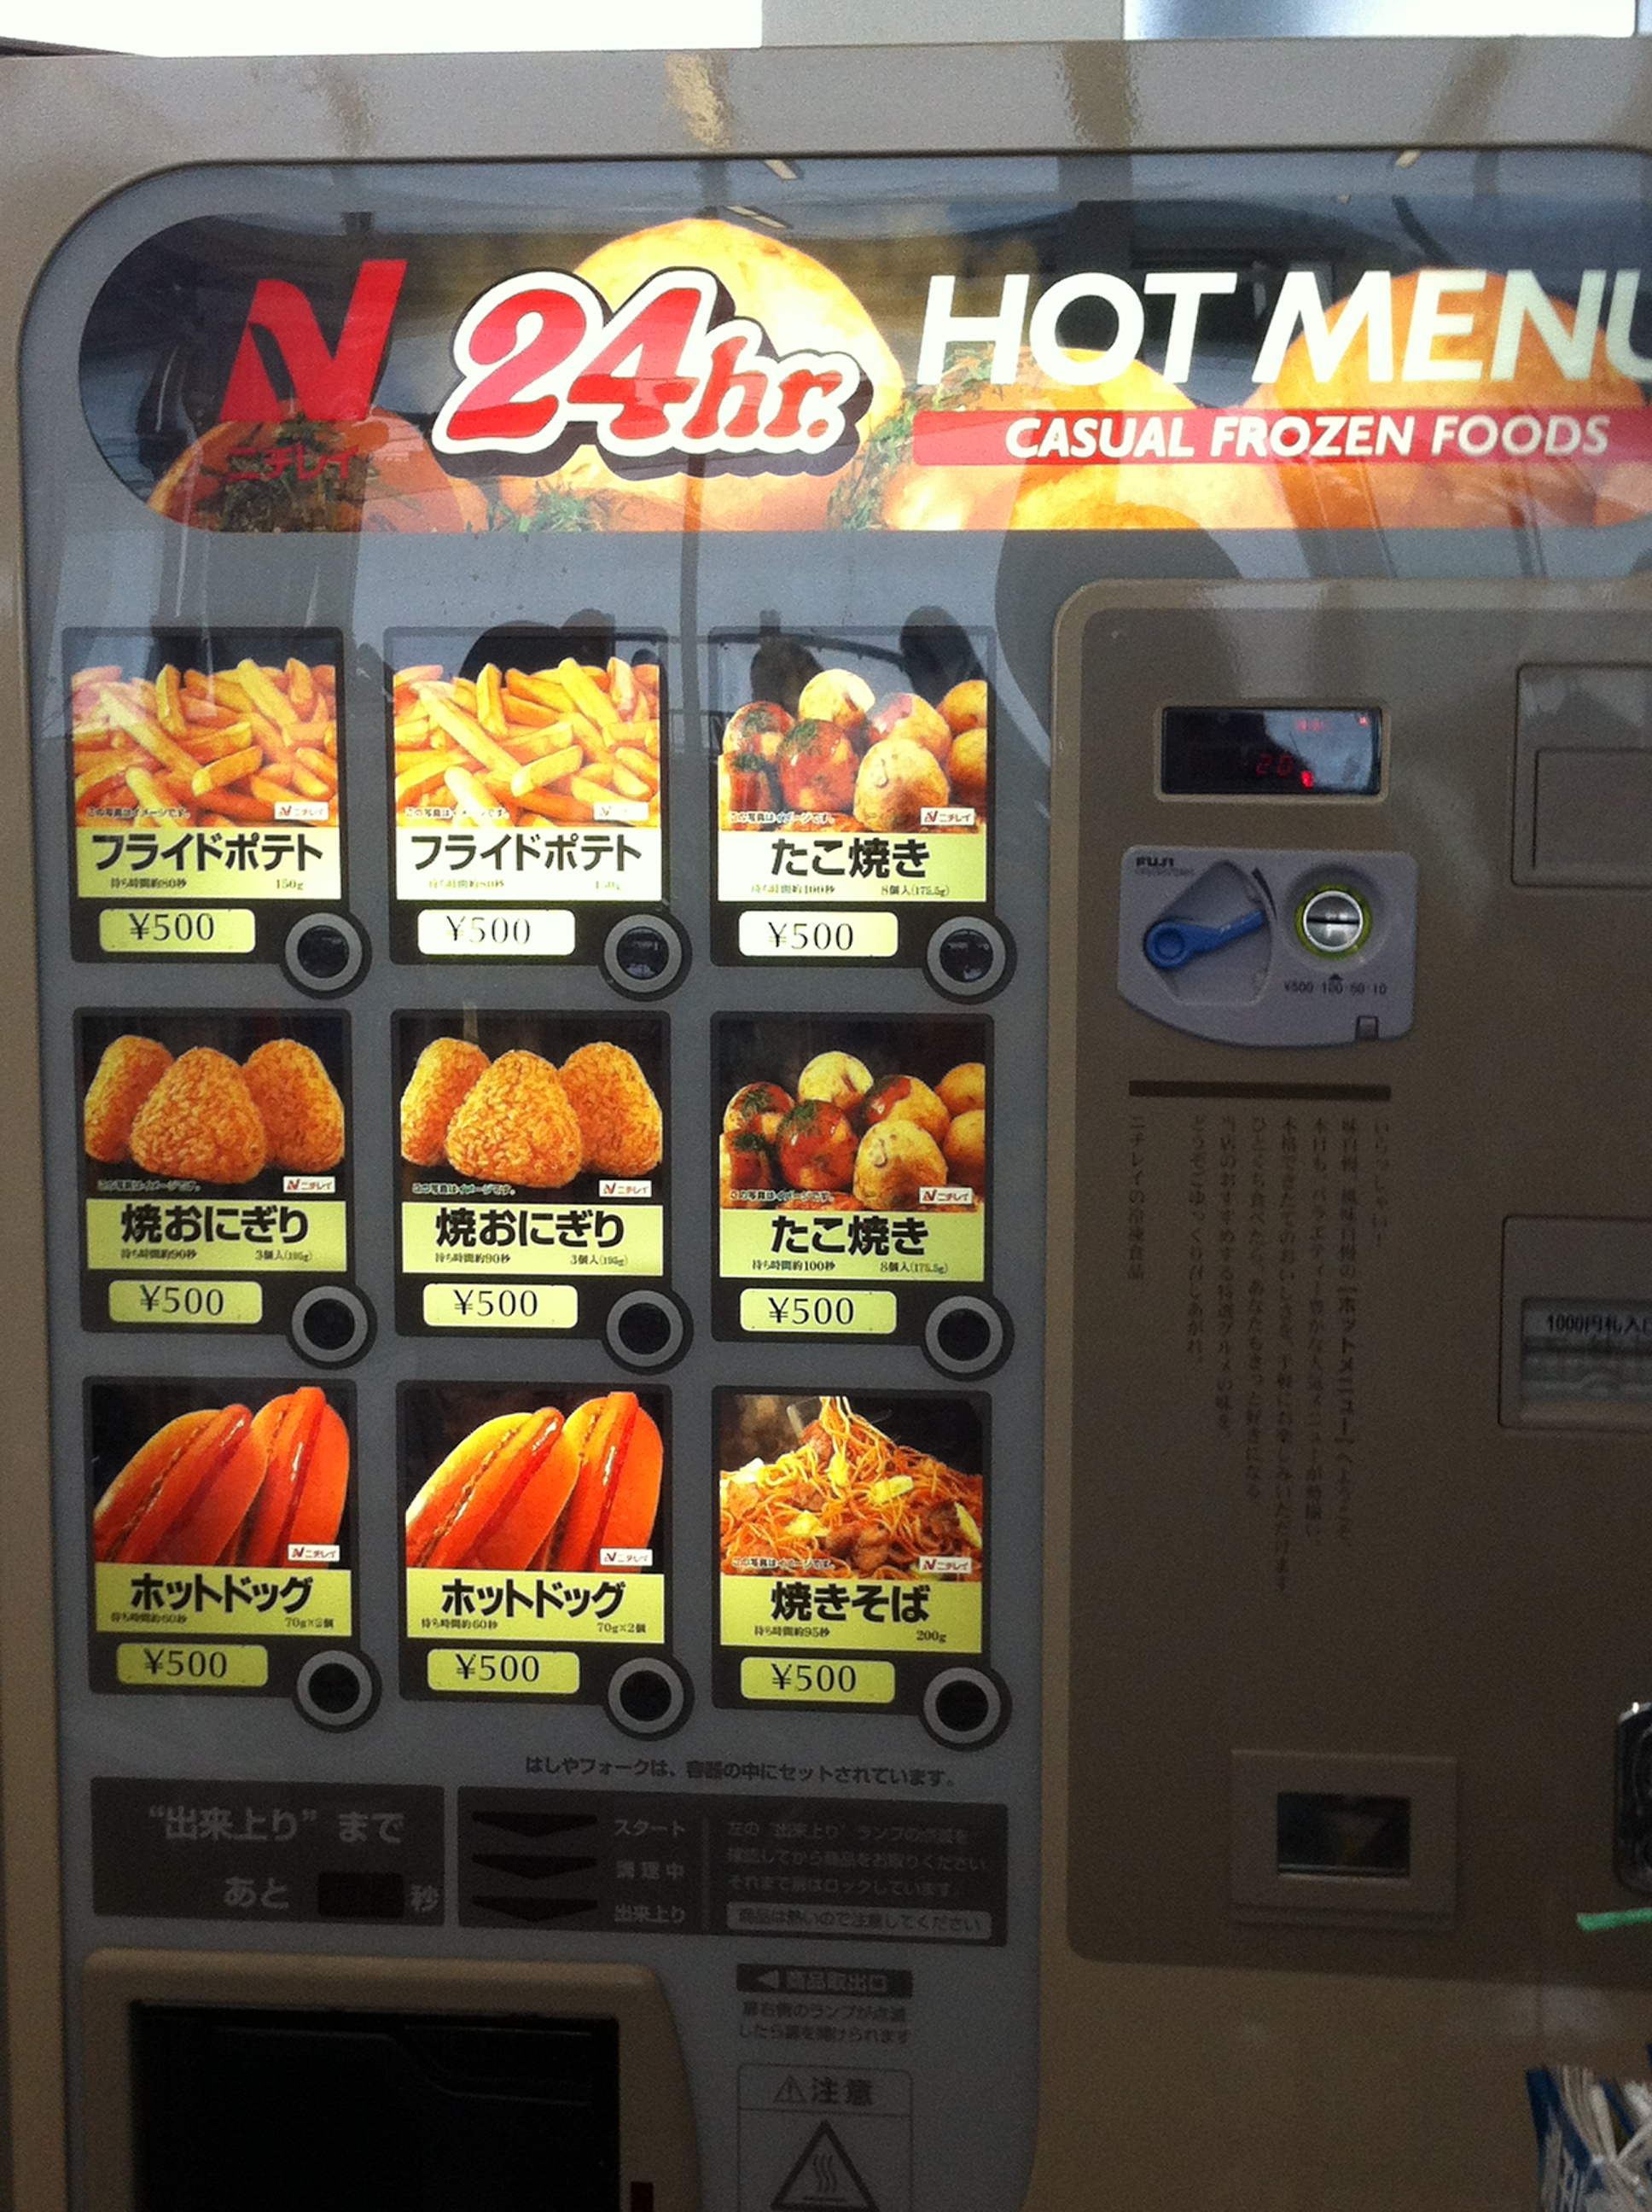 There have been rumors about vending machines selling items of young ...